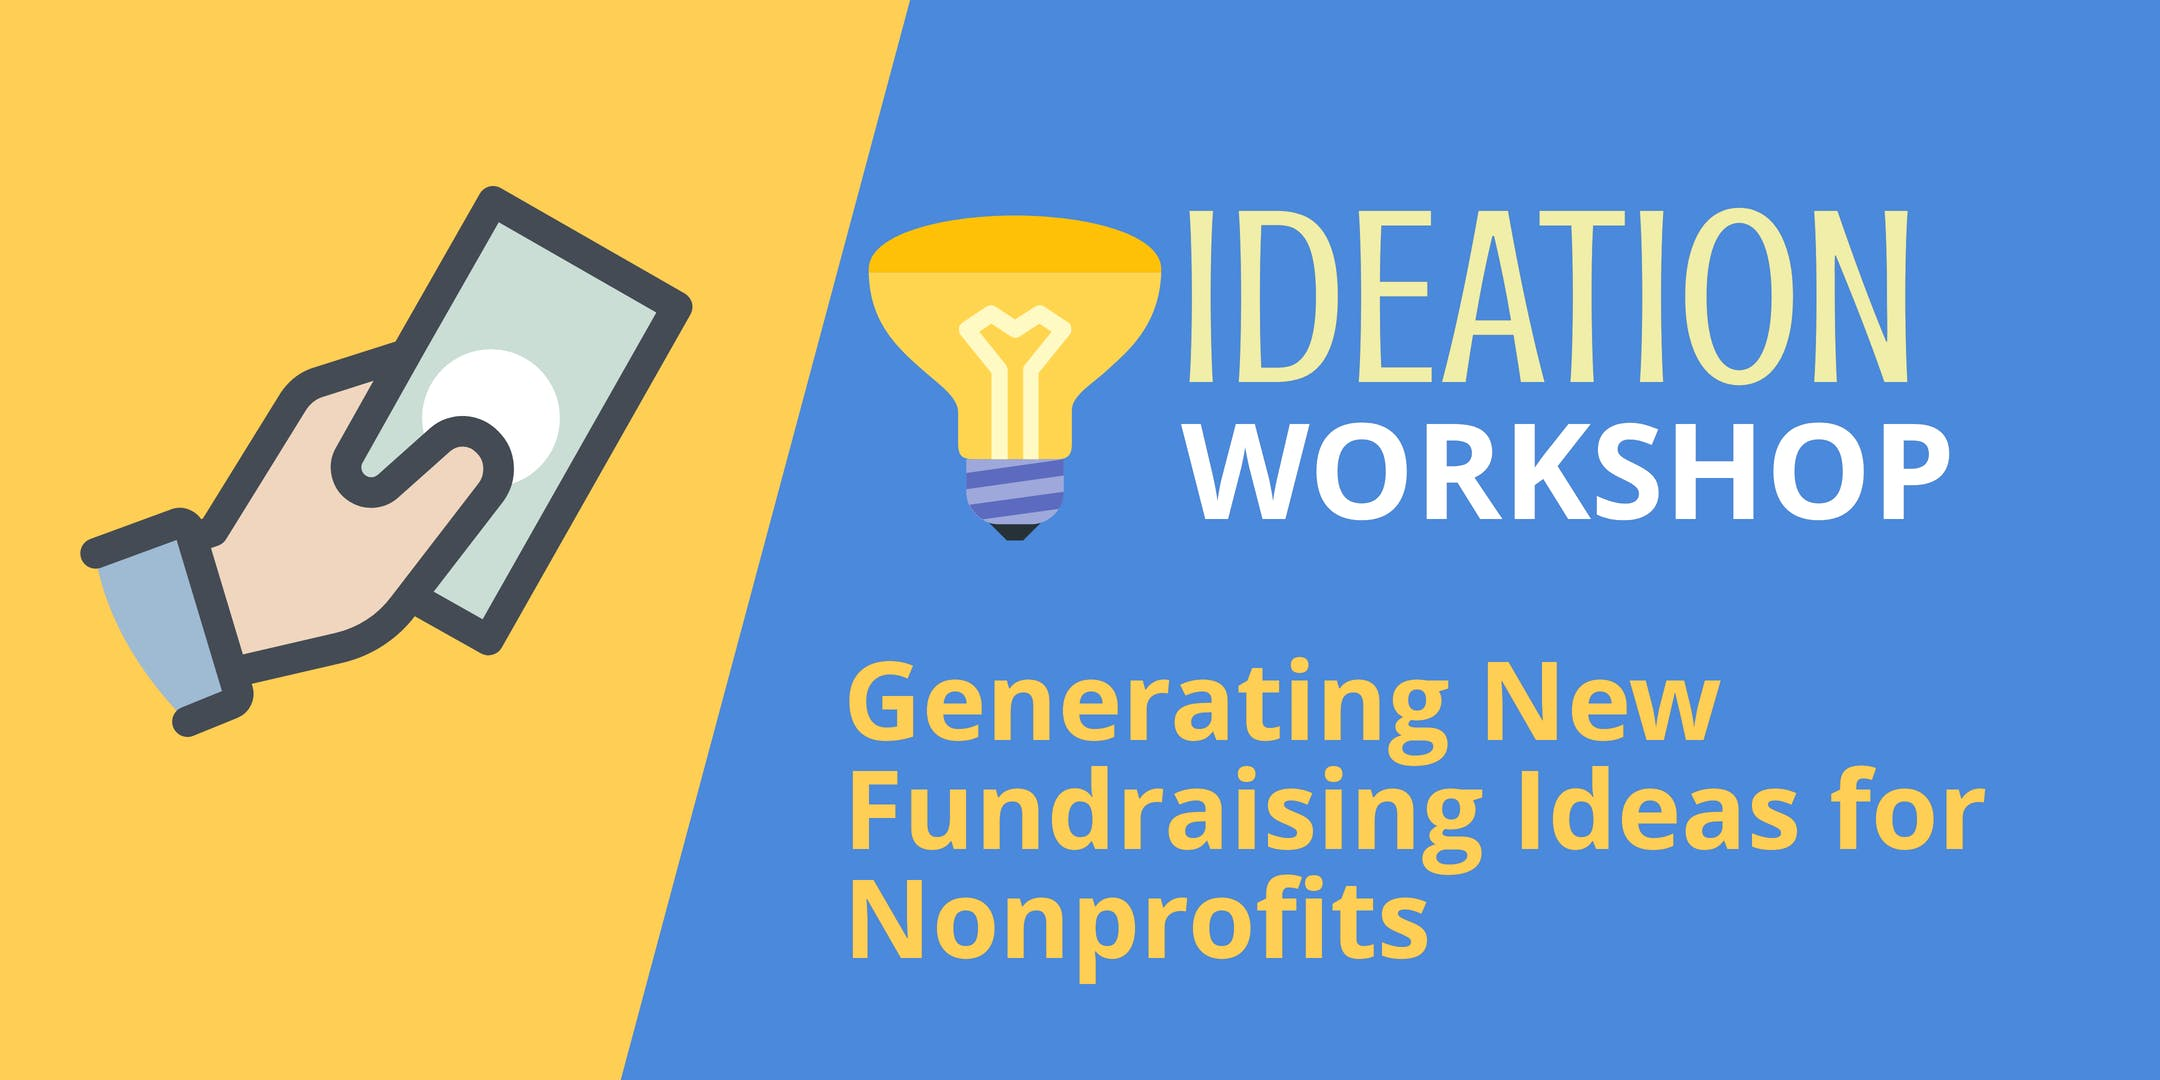 ideation workshop: new fundraising ideas for nonprofits